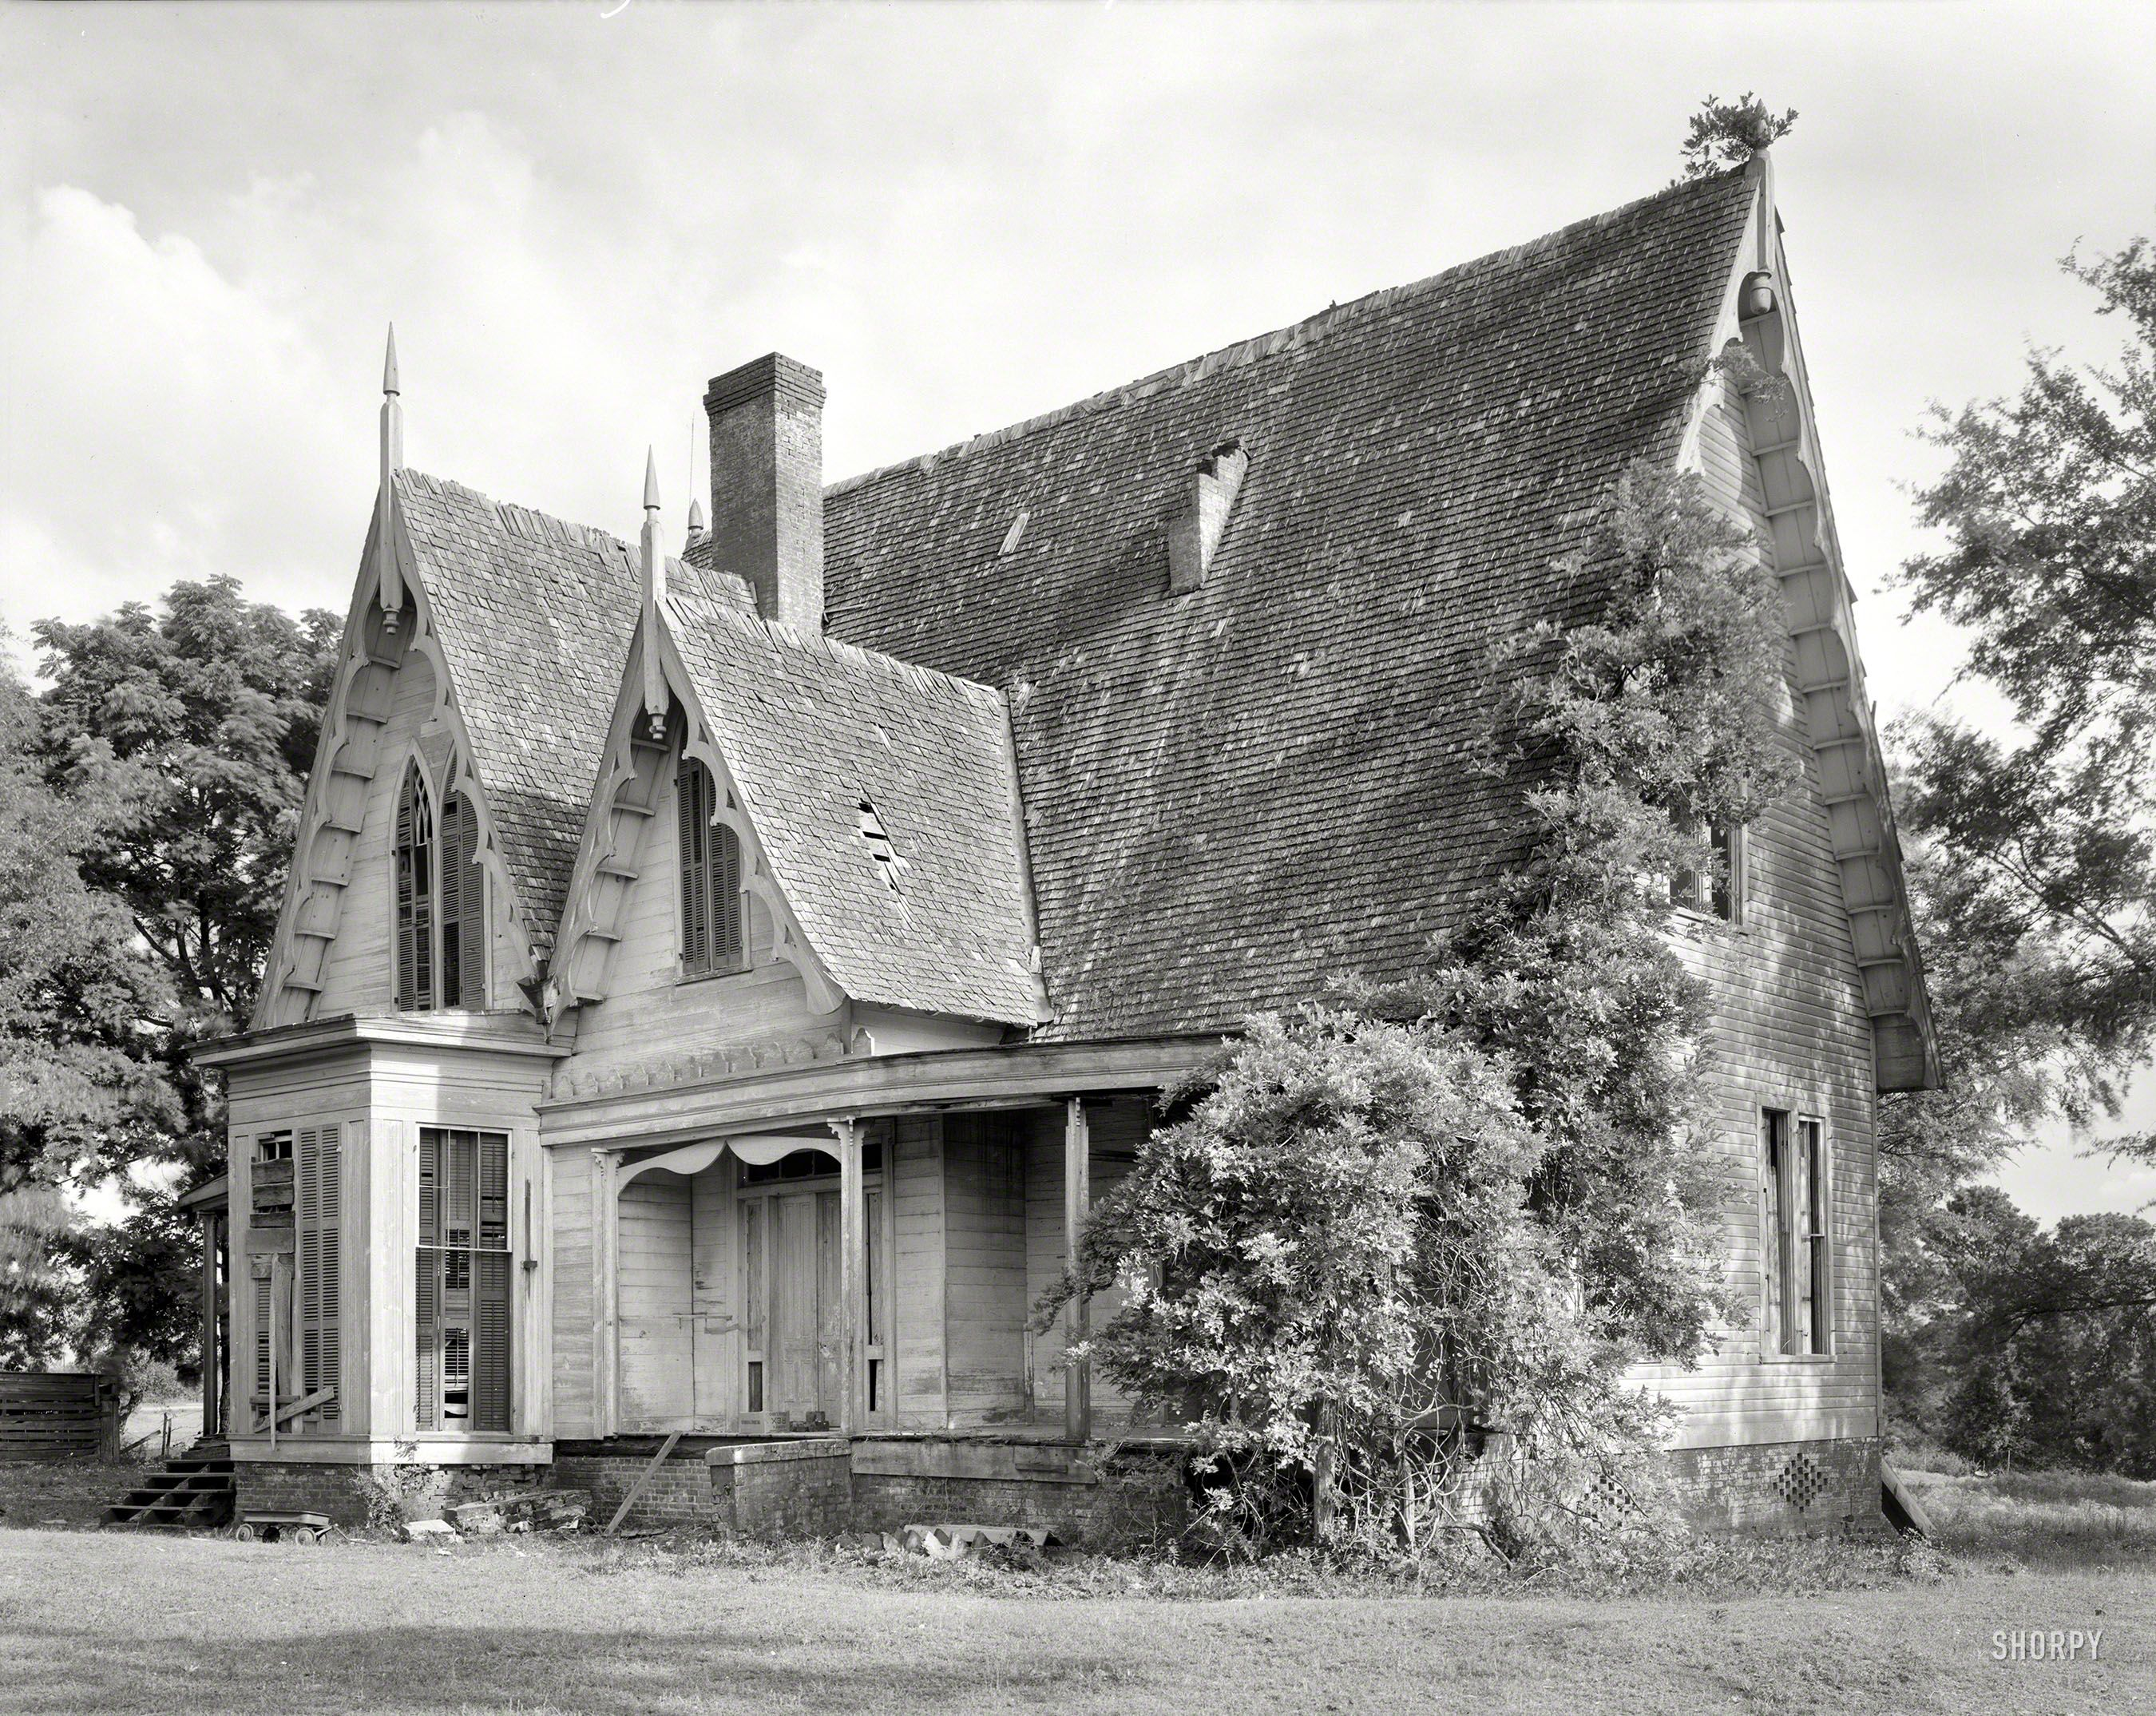 Alabama hale county akron -  Knight House Greensboro Vicinity Hale County Alabama Gothic Revival